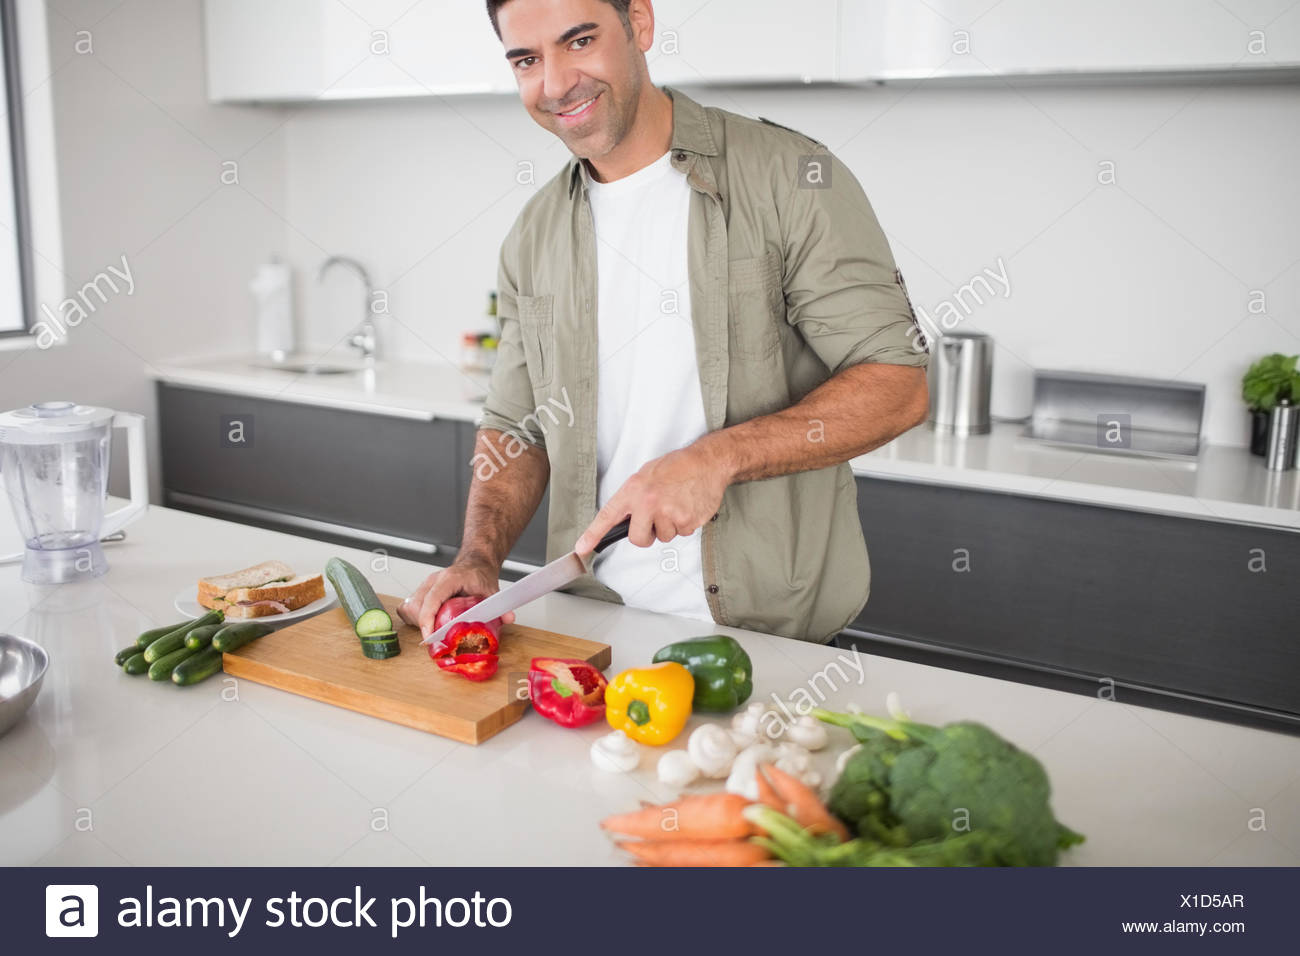 Smiling man chopping vegetables in kitchen - Stock Image